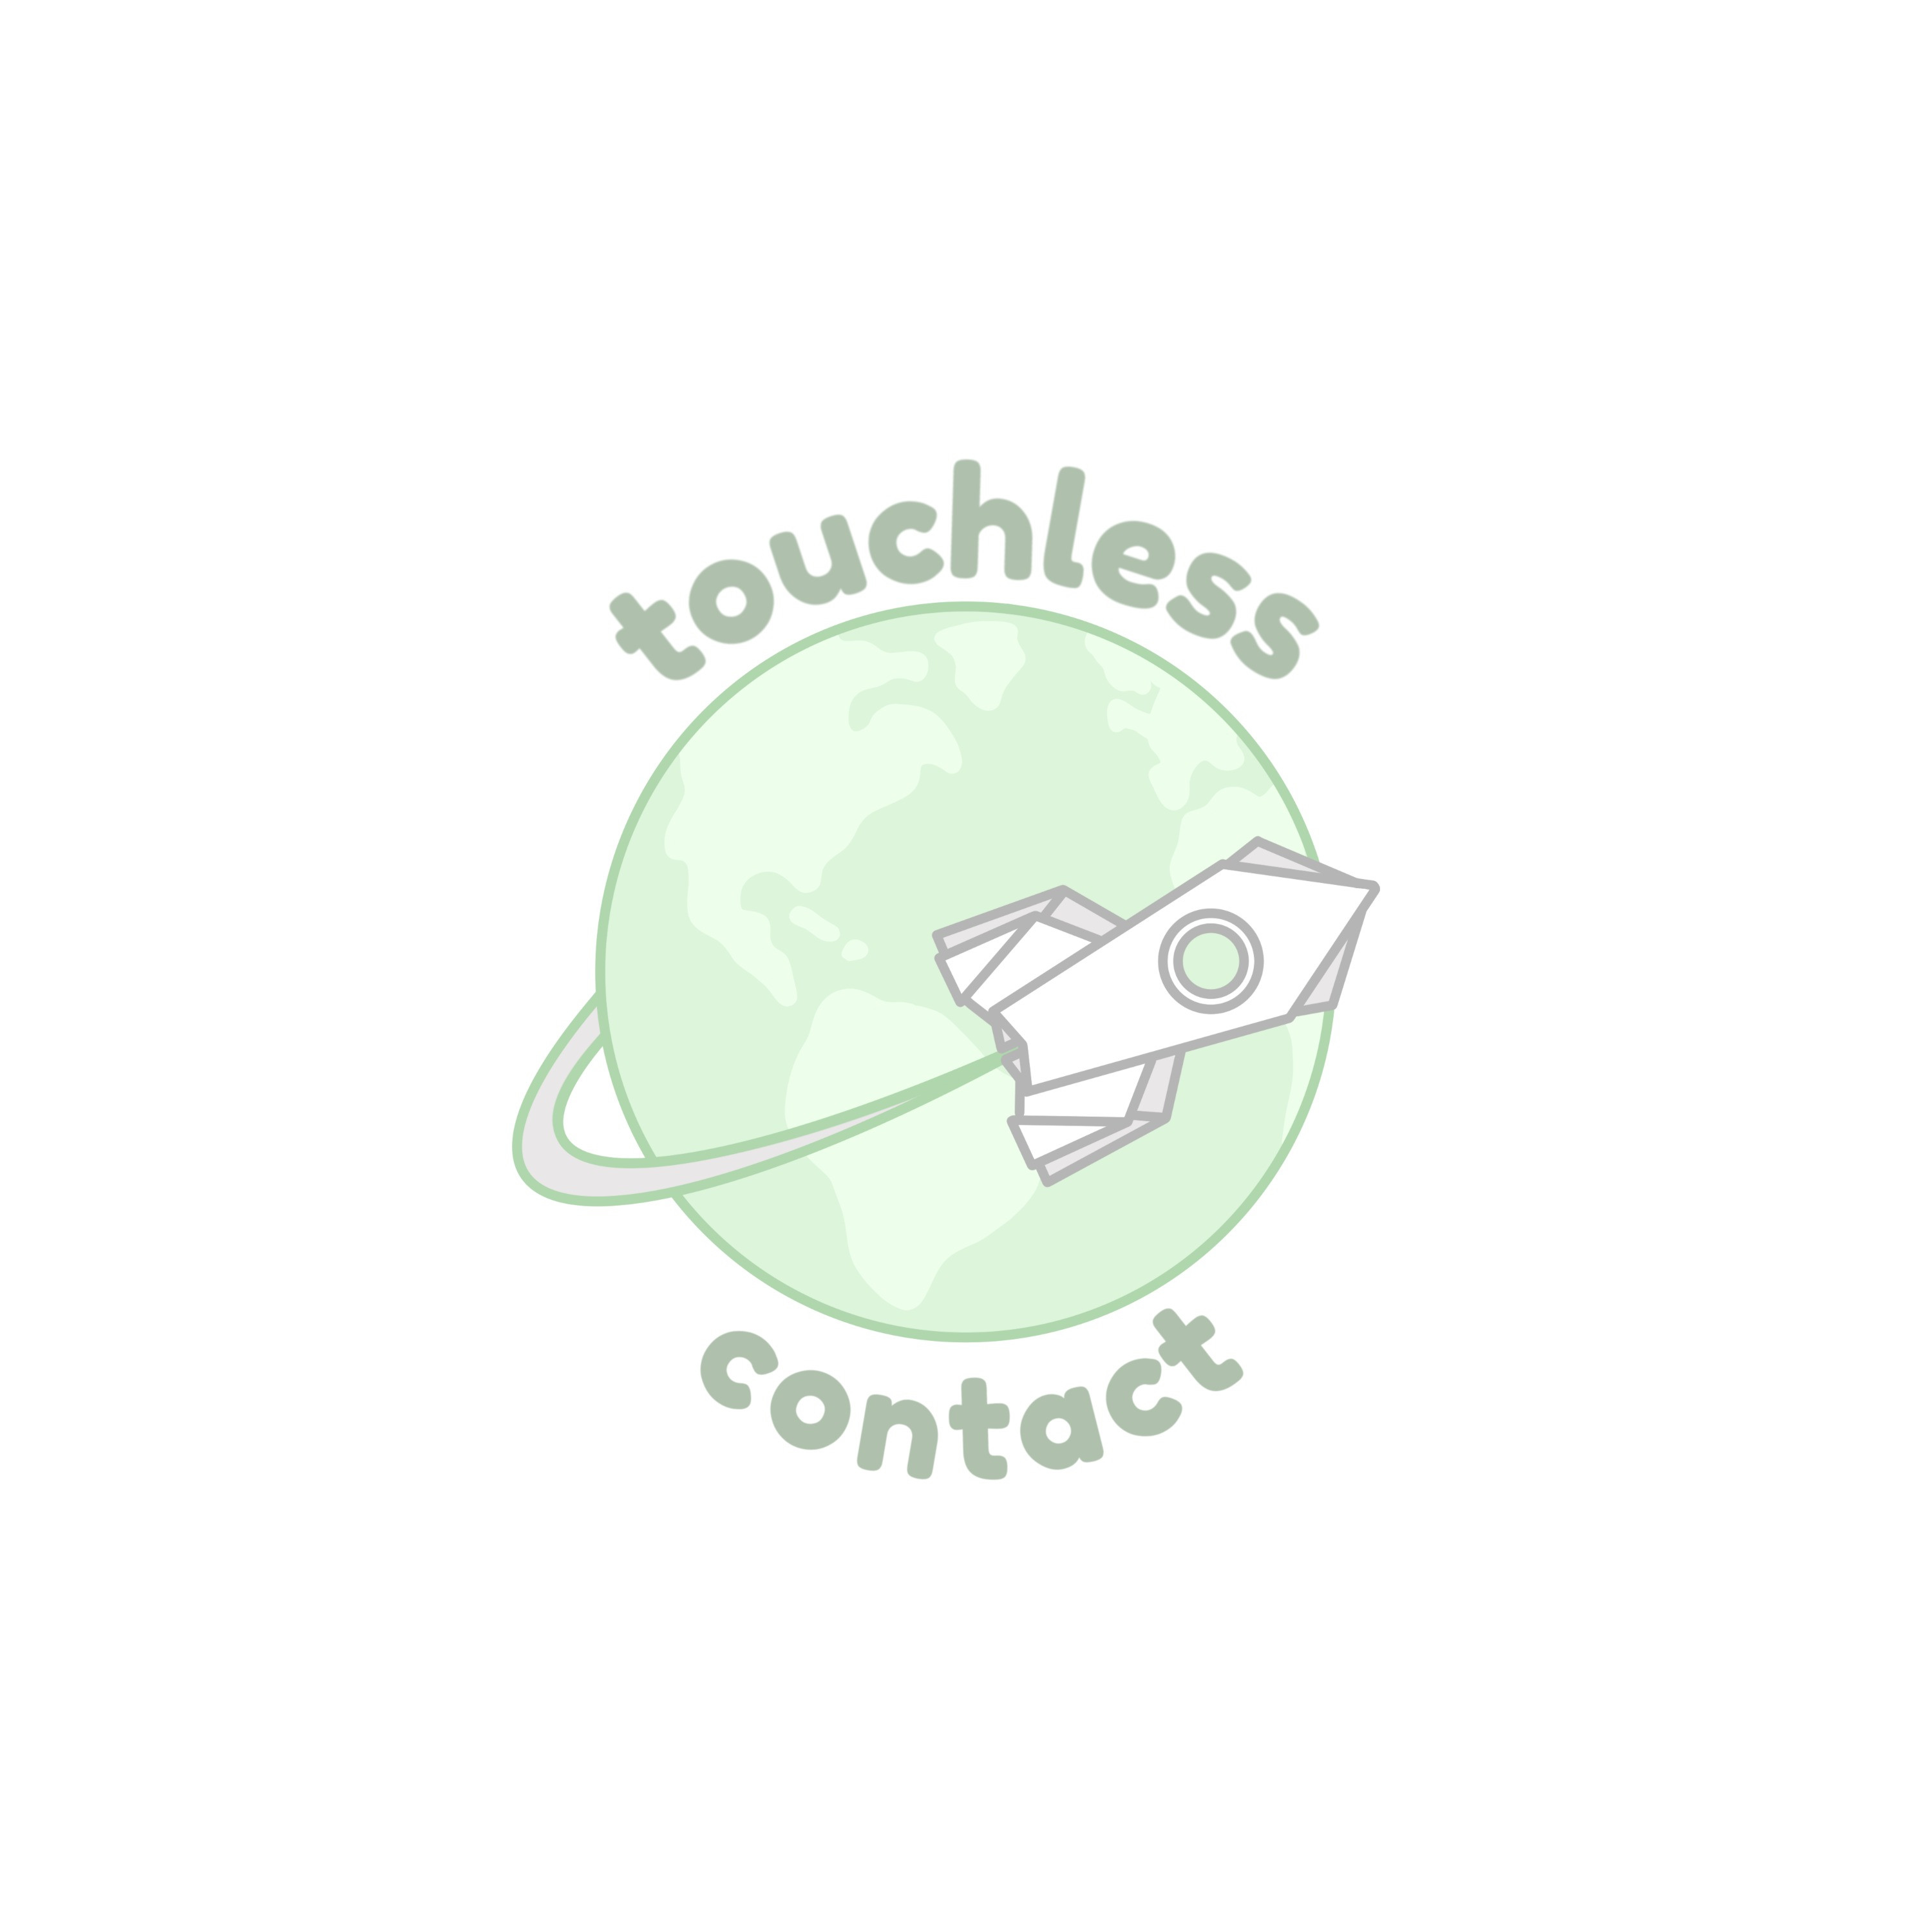 Learn more about Touchless Contact